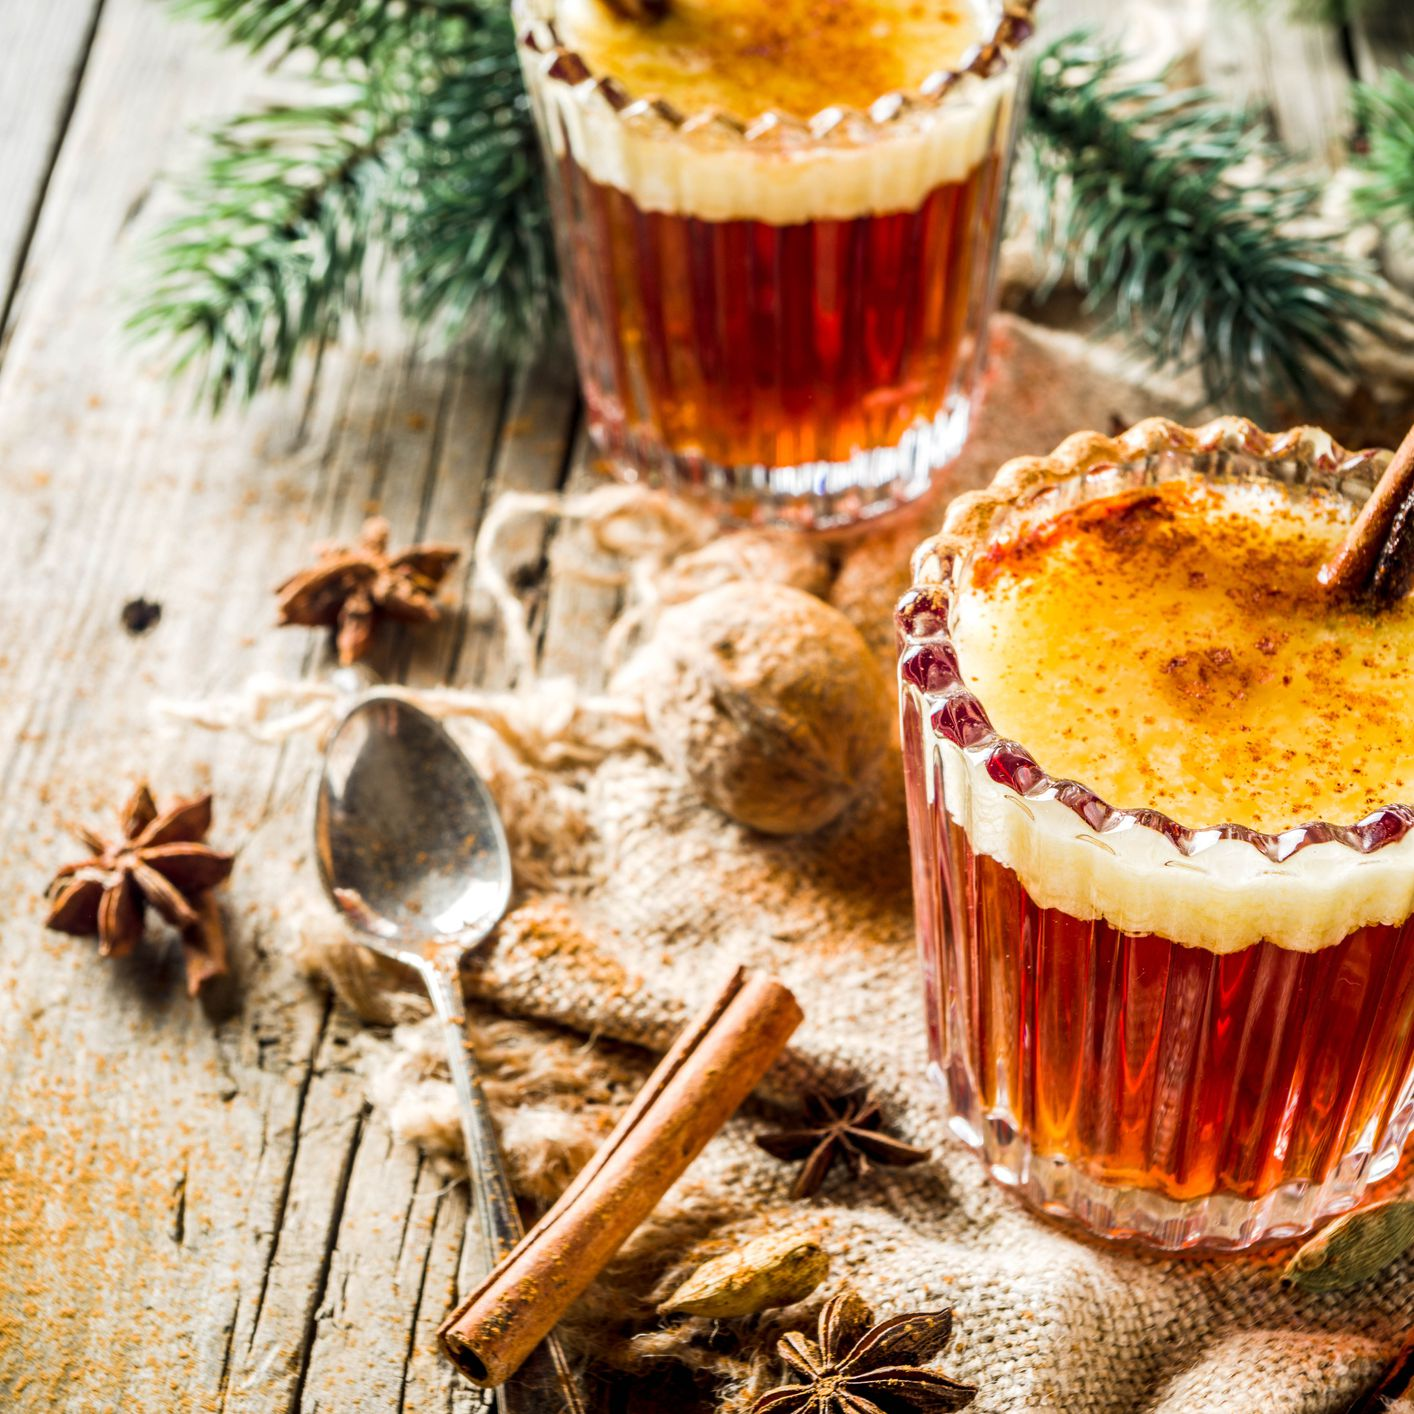 8 Hot Rum Drinks to Warm You Up This Winter